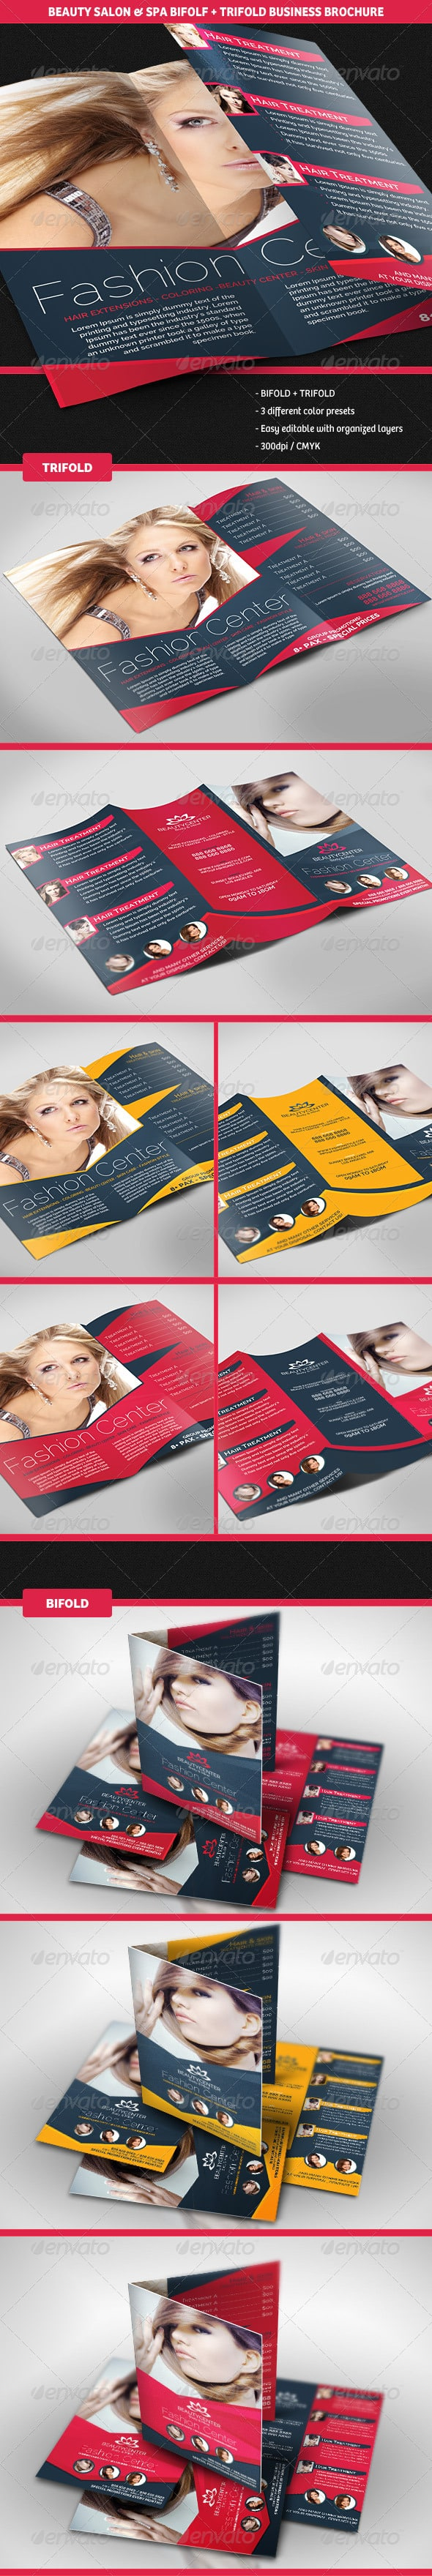 Beauty Center Bifold + Trifold Business Brochures